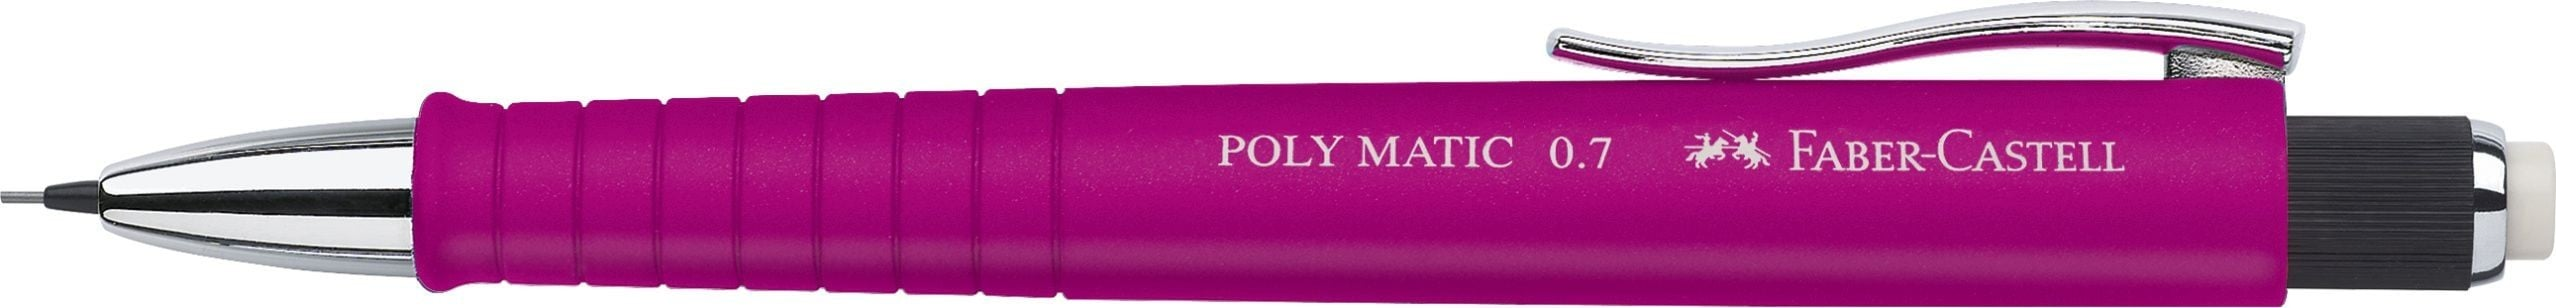 CREION MECANIC 0.7MM POLY MATIC ROZ FABER-CASTELL